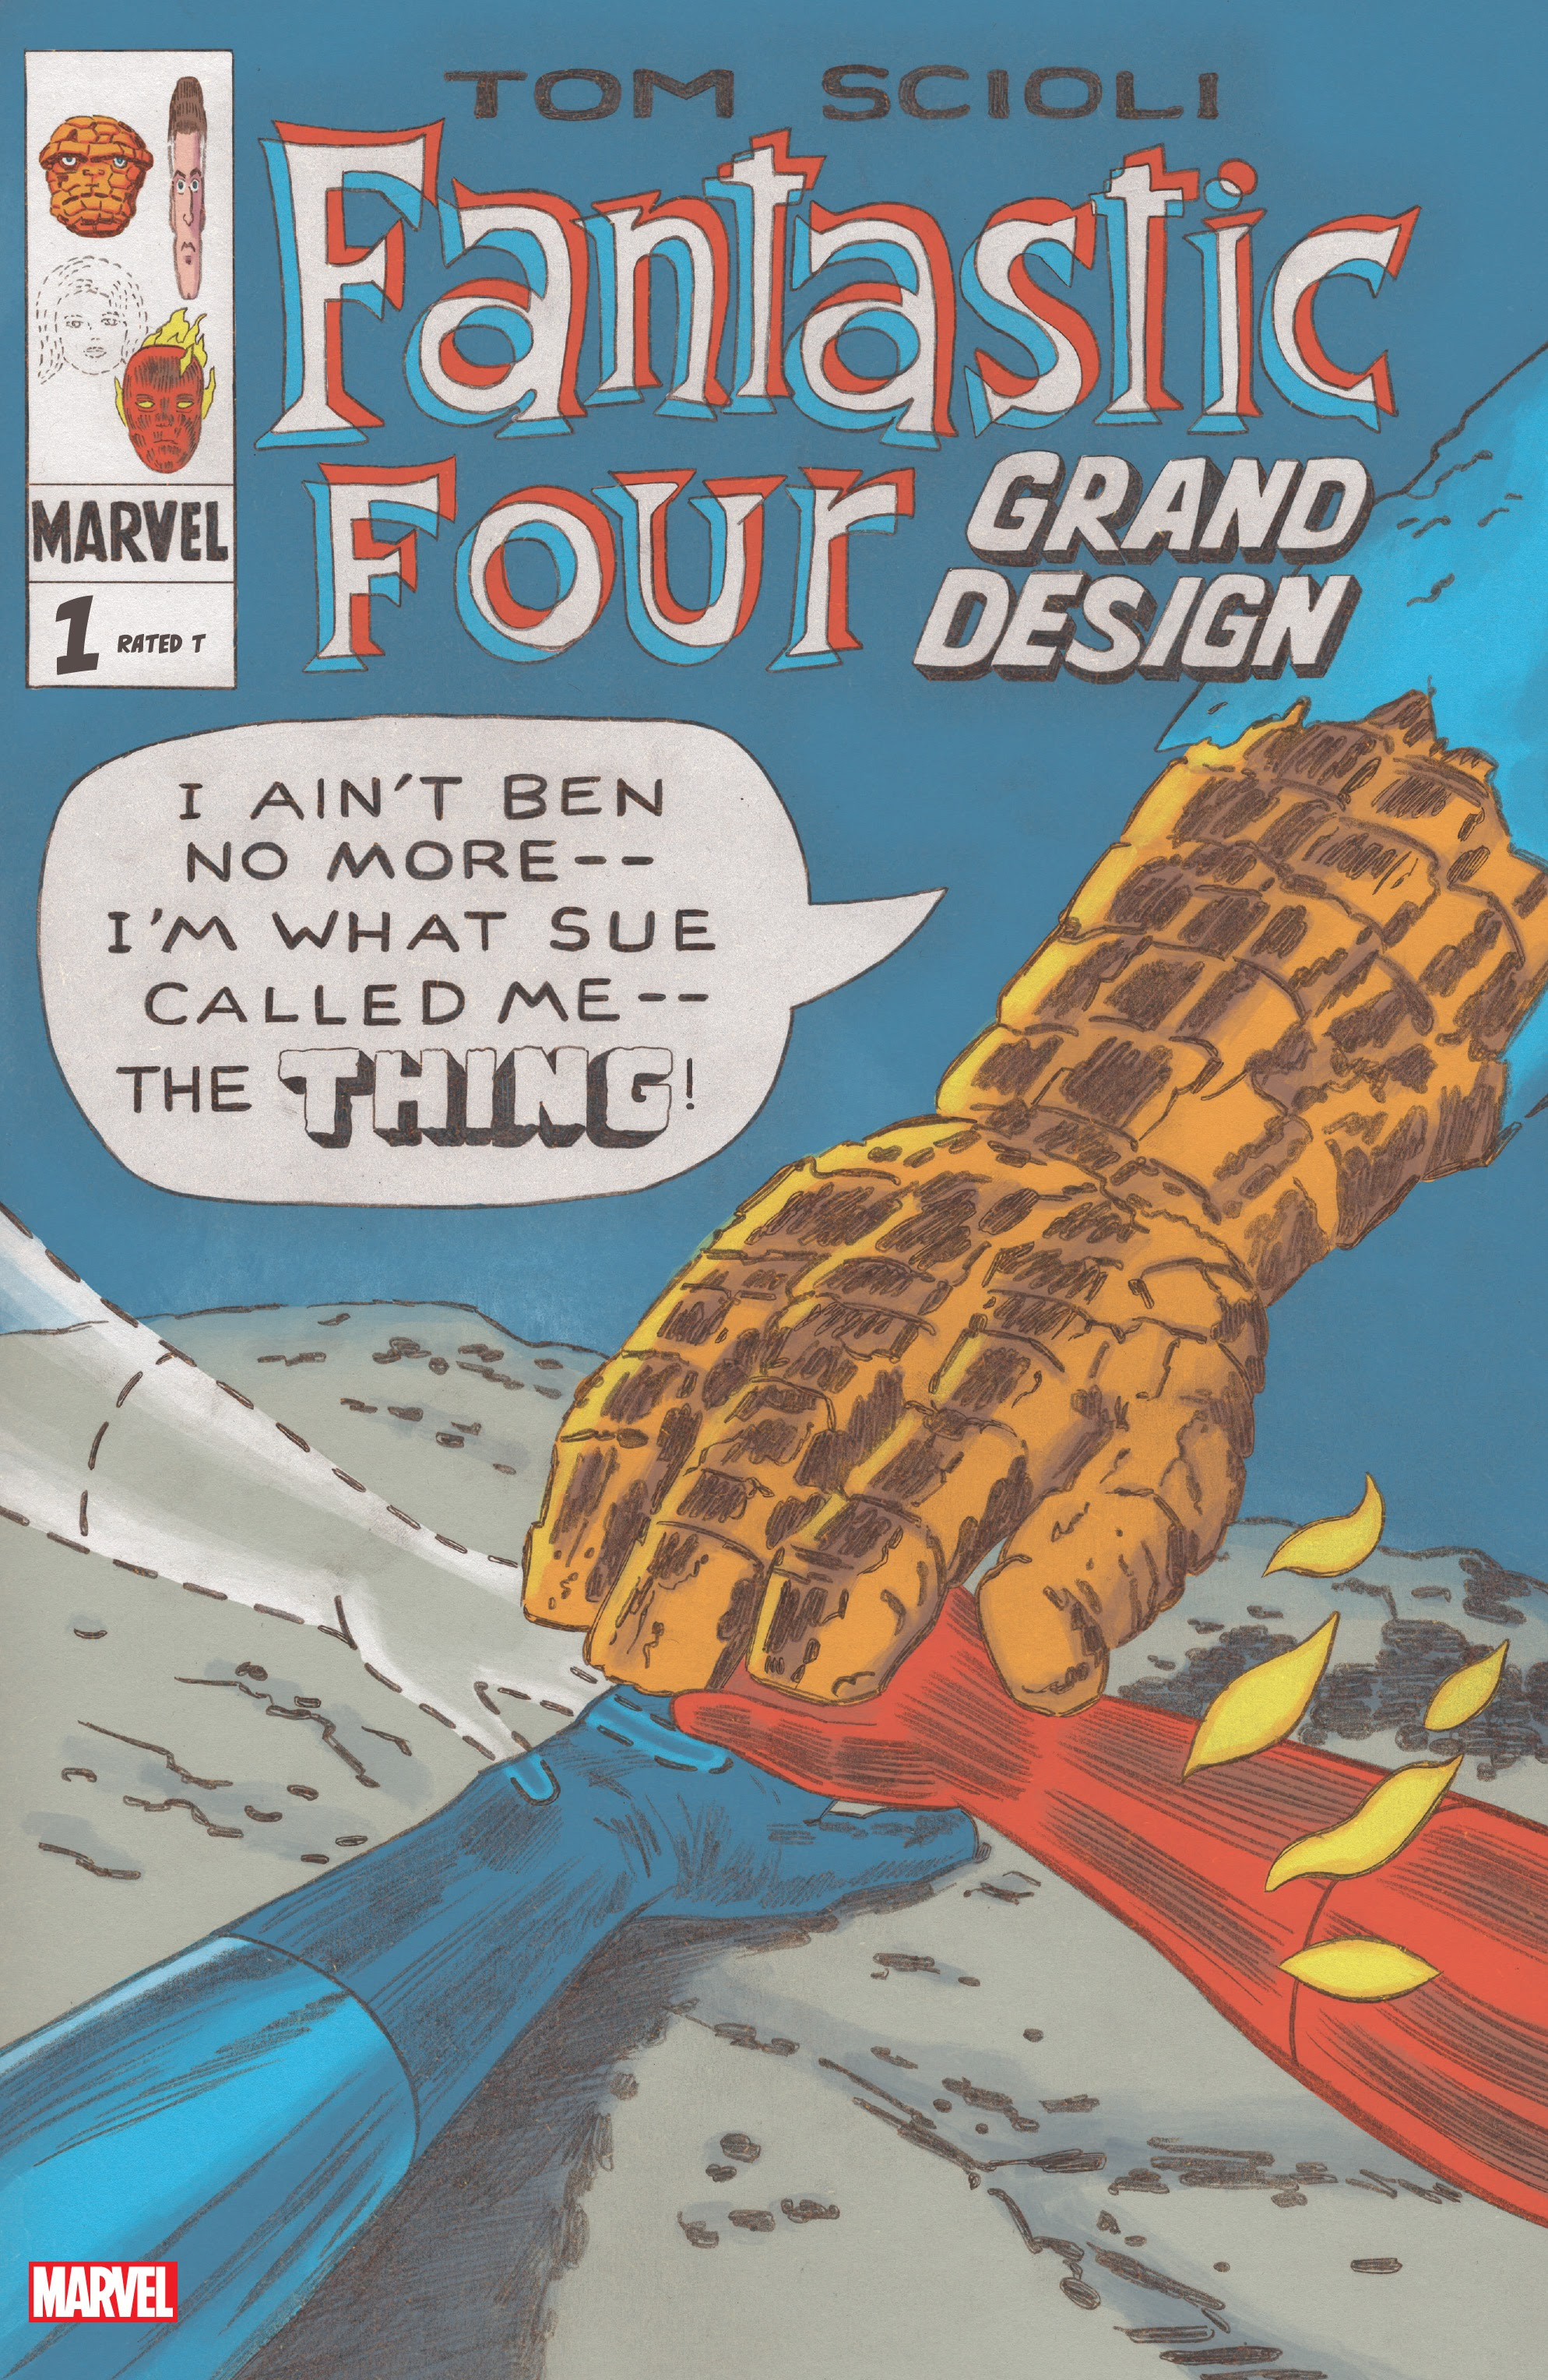 Fantastic Four: Grand Design 1 Page 1